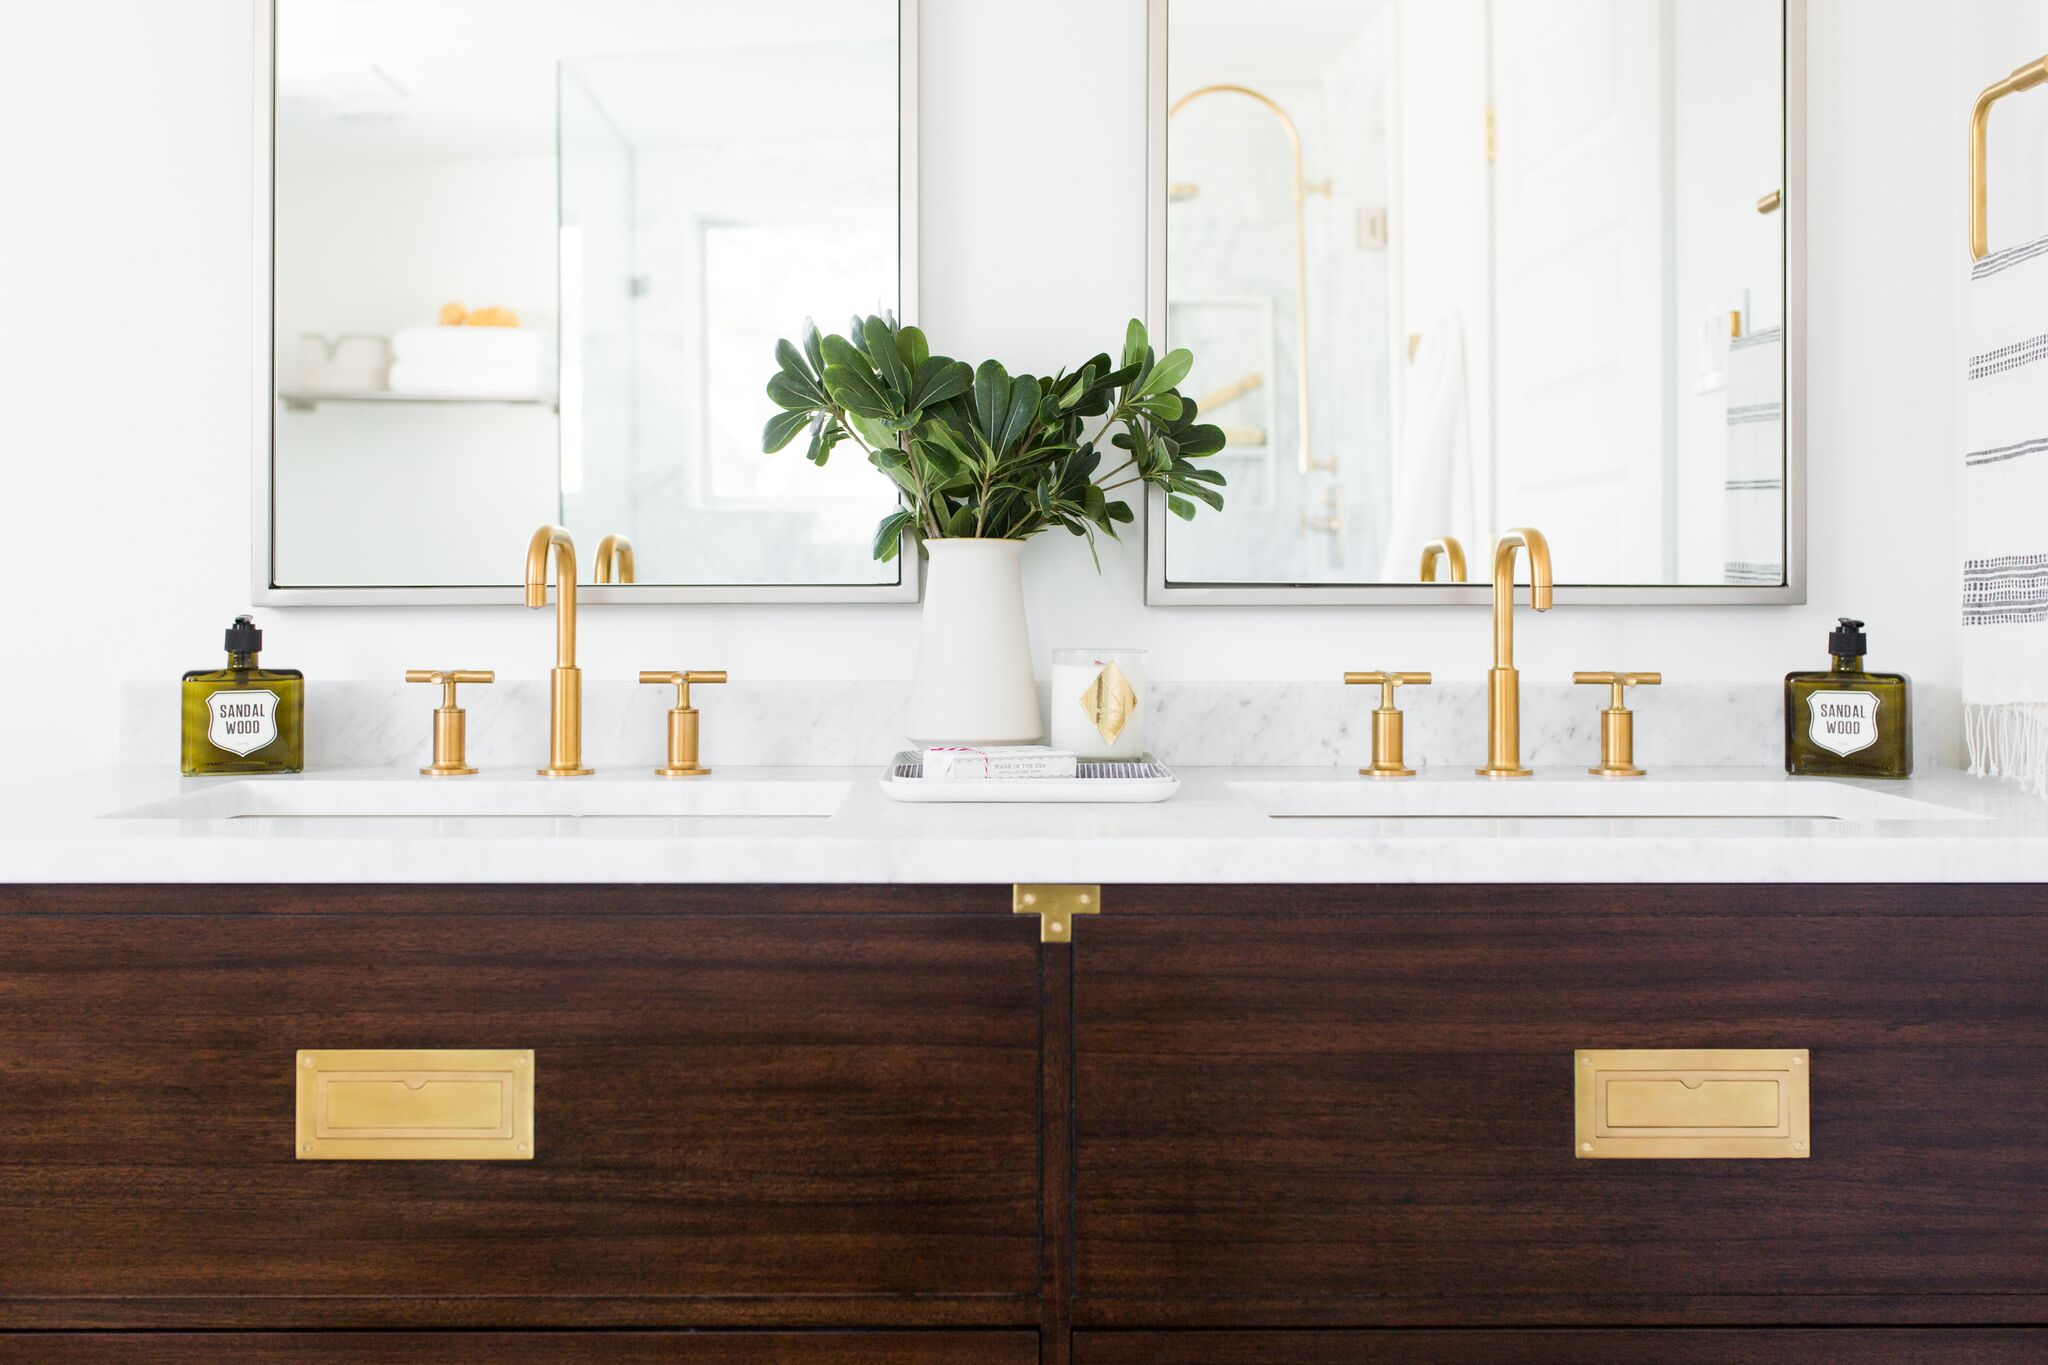 Small green plant between double sink vanity